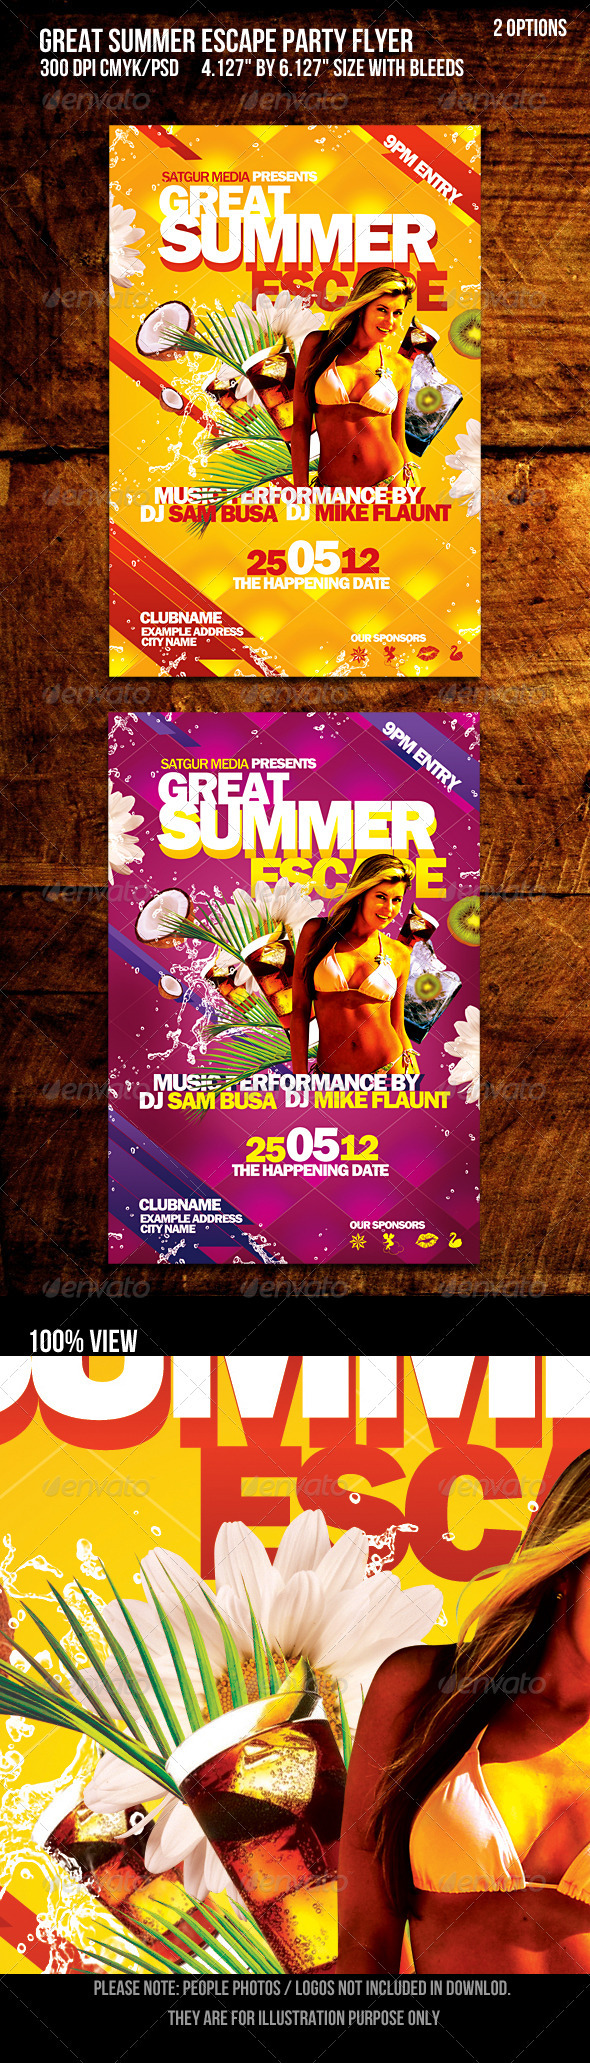 Great Summer Escape Beach /summer Party Flyer - Events Flyers